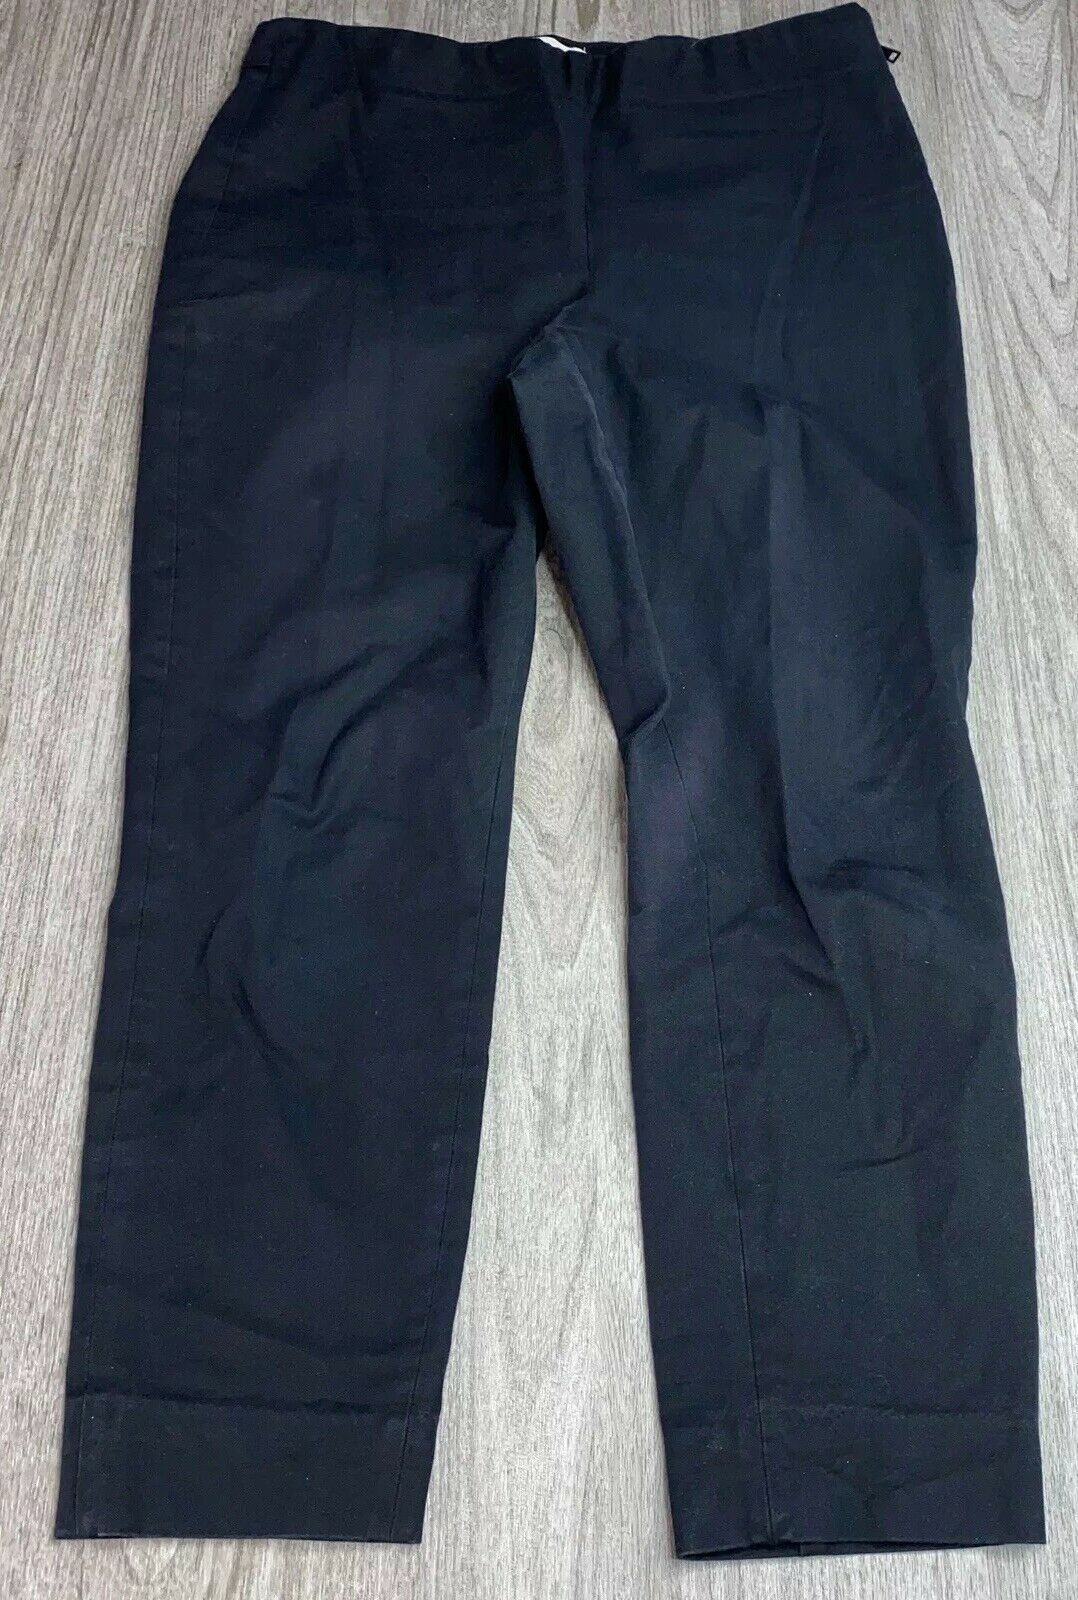 Everlane The Side-Zip Work Pants Size 12 Black Wo… - image 4